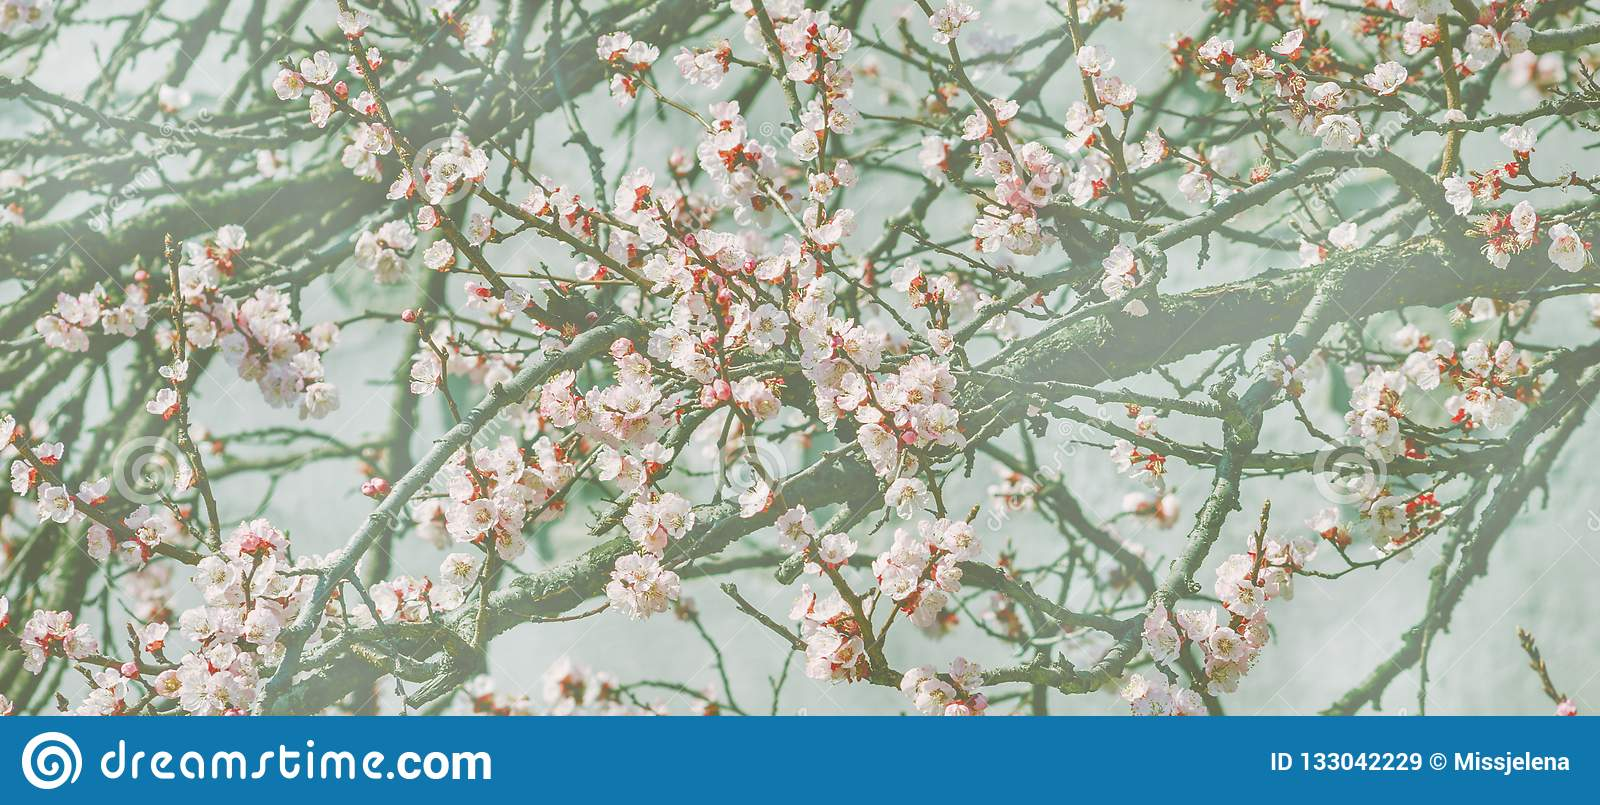 Wallpaper With Cherry Blossom Branch In Japanese Garden In